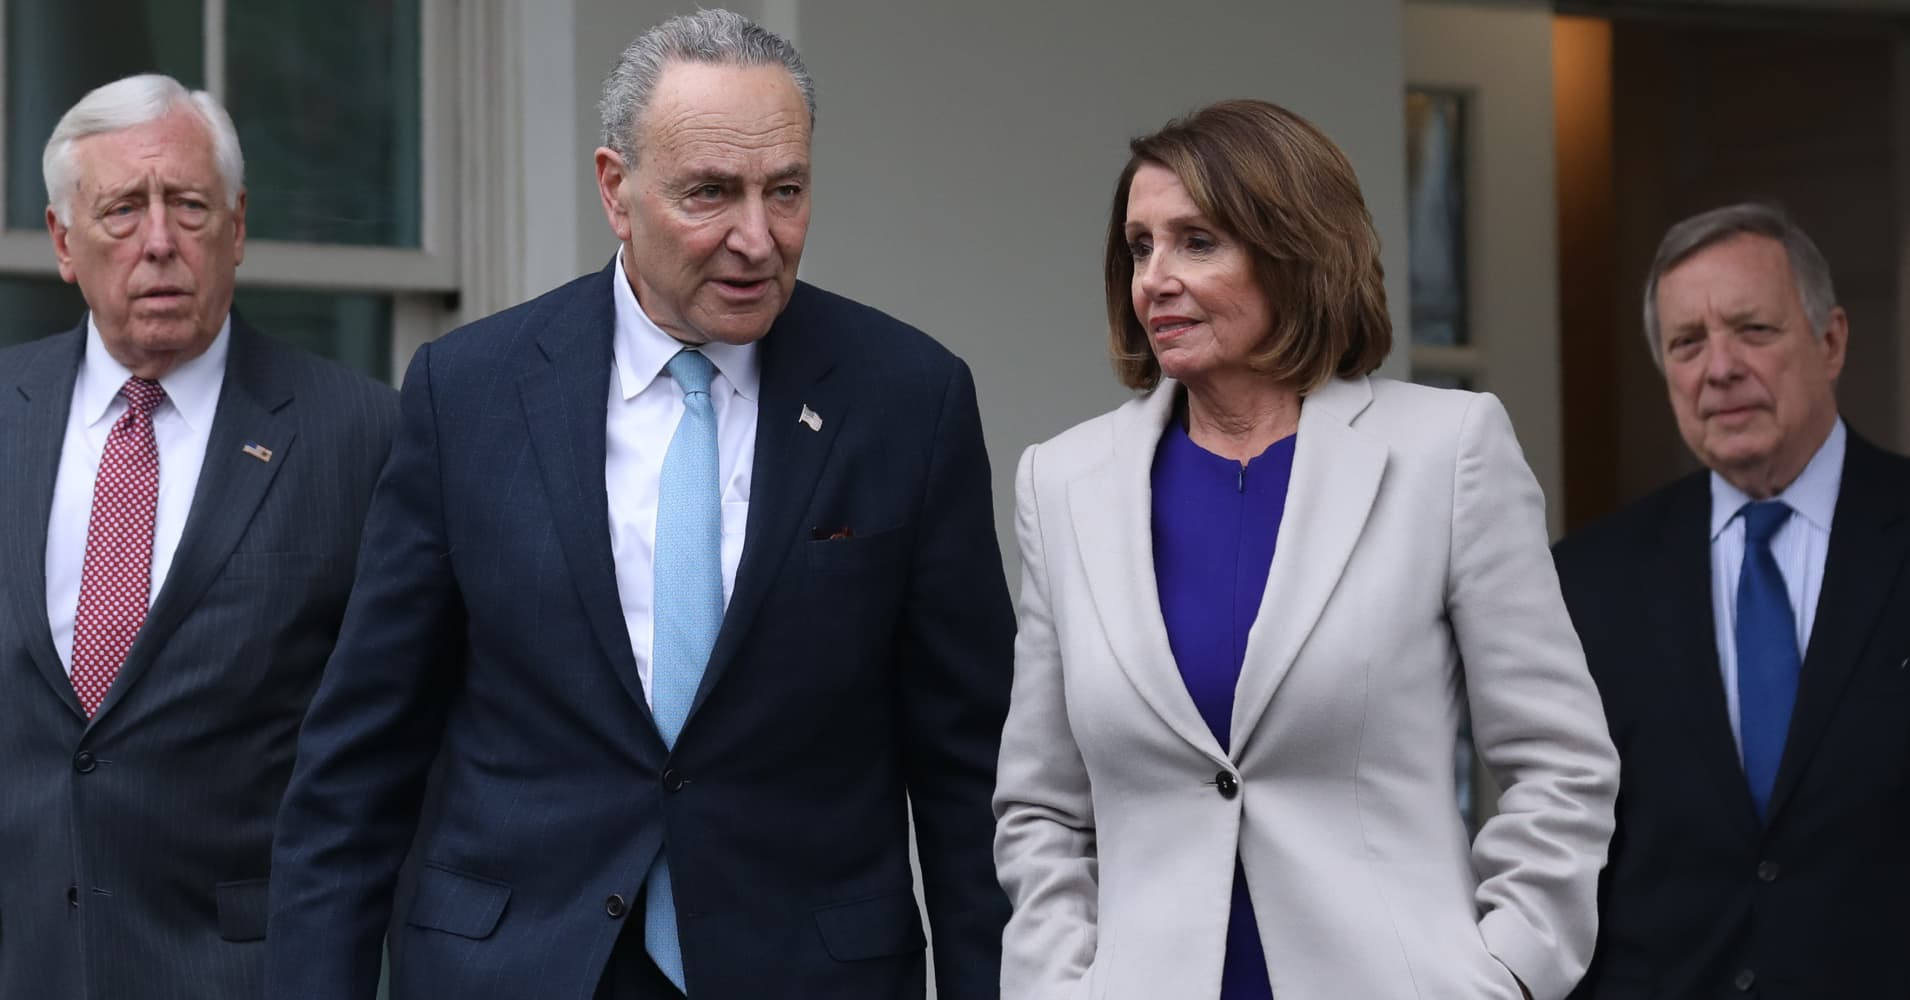 Nancy Pelosi and Chuck Schumer highlight the partial government shutdown's human cost before another meeting with Trump